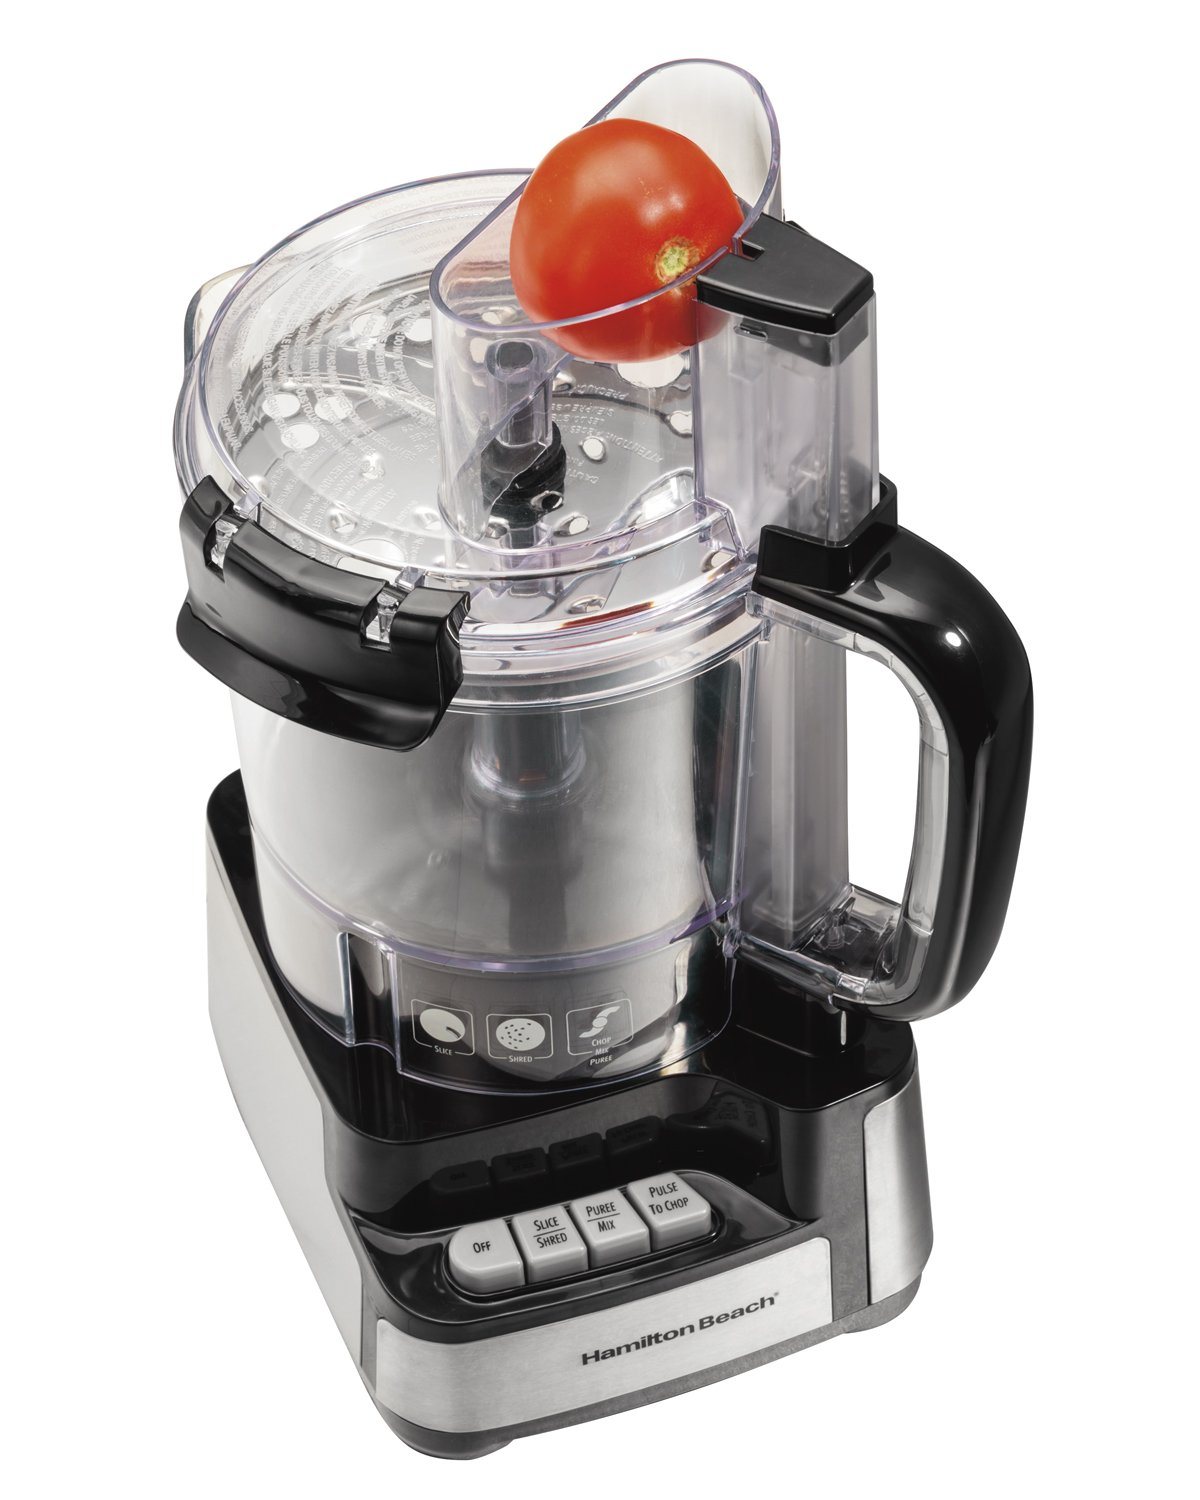 Amazon.com: Hamilton Beach 12-Cup Stack and Snap Food Processor ...